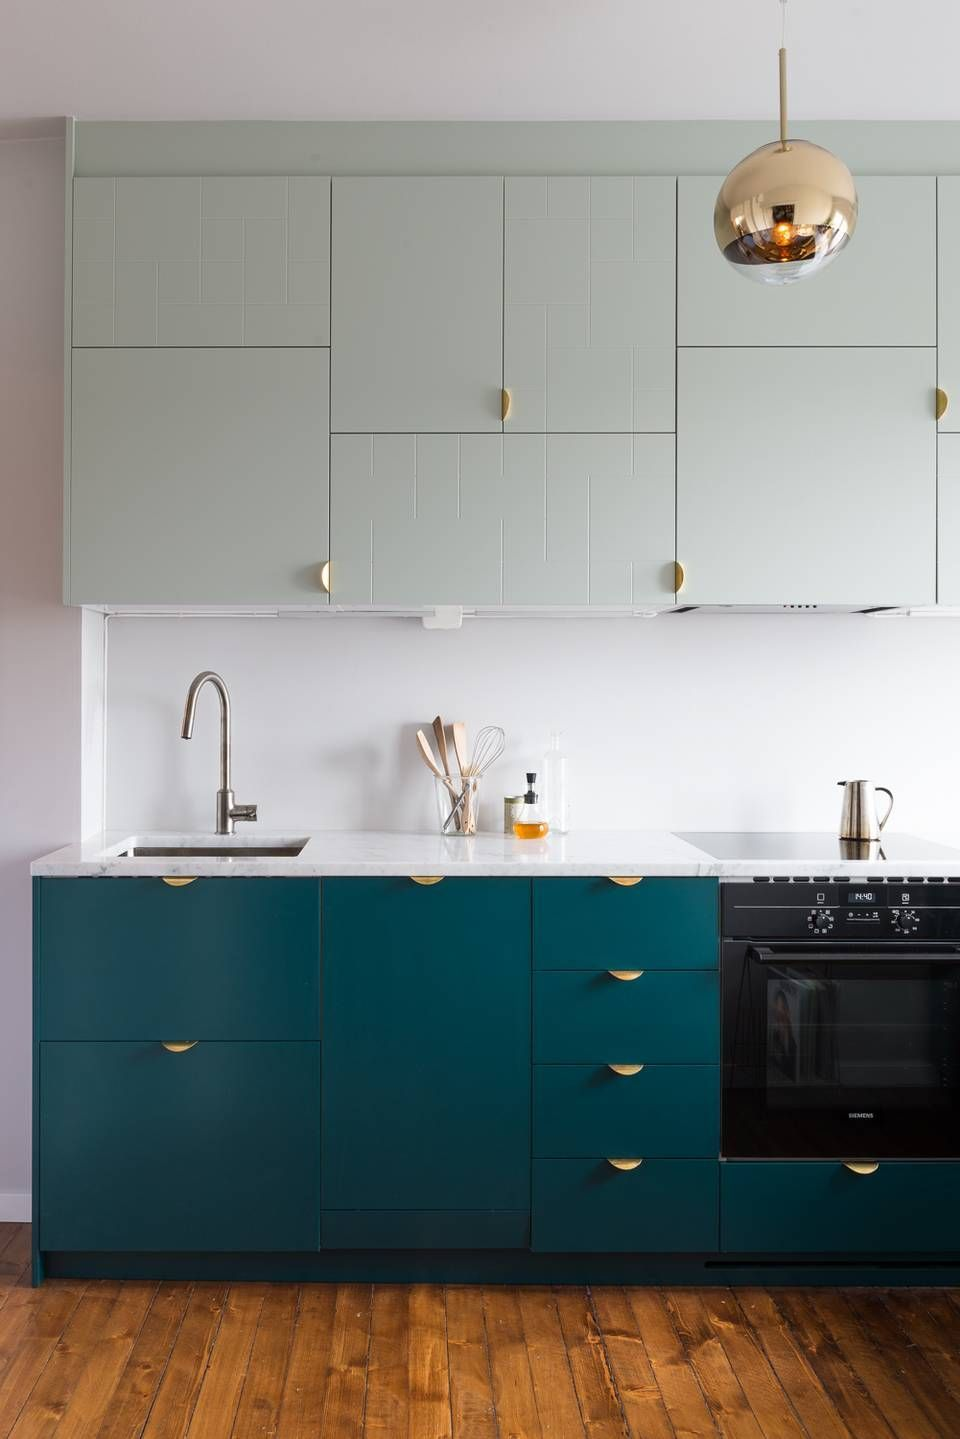 20+ Best Two Tone Kitchen Cabinets: Cool, Unique, Awesome and Popular